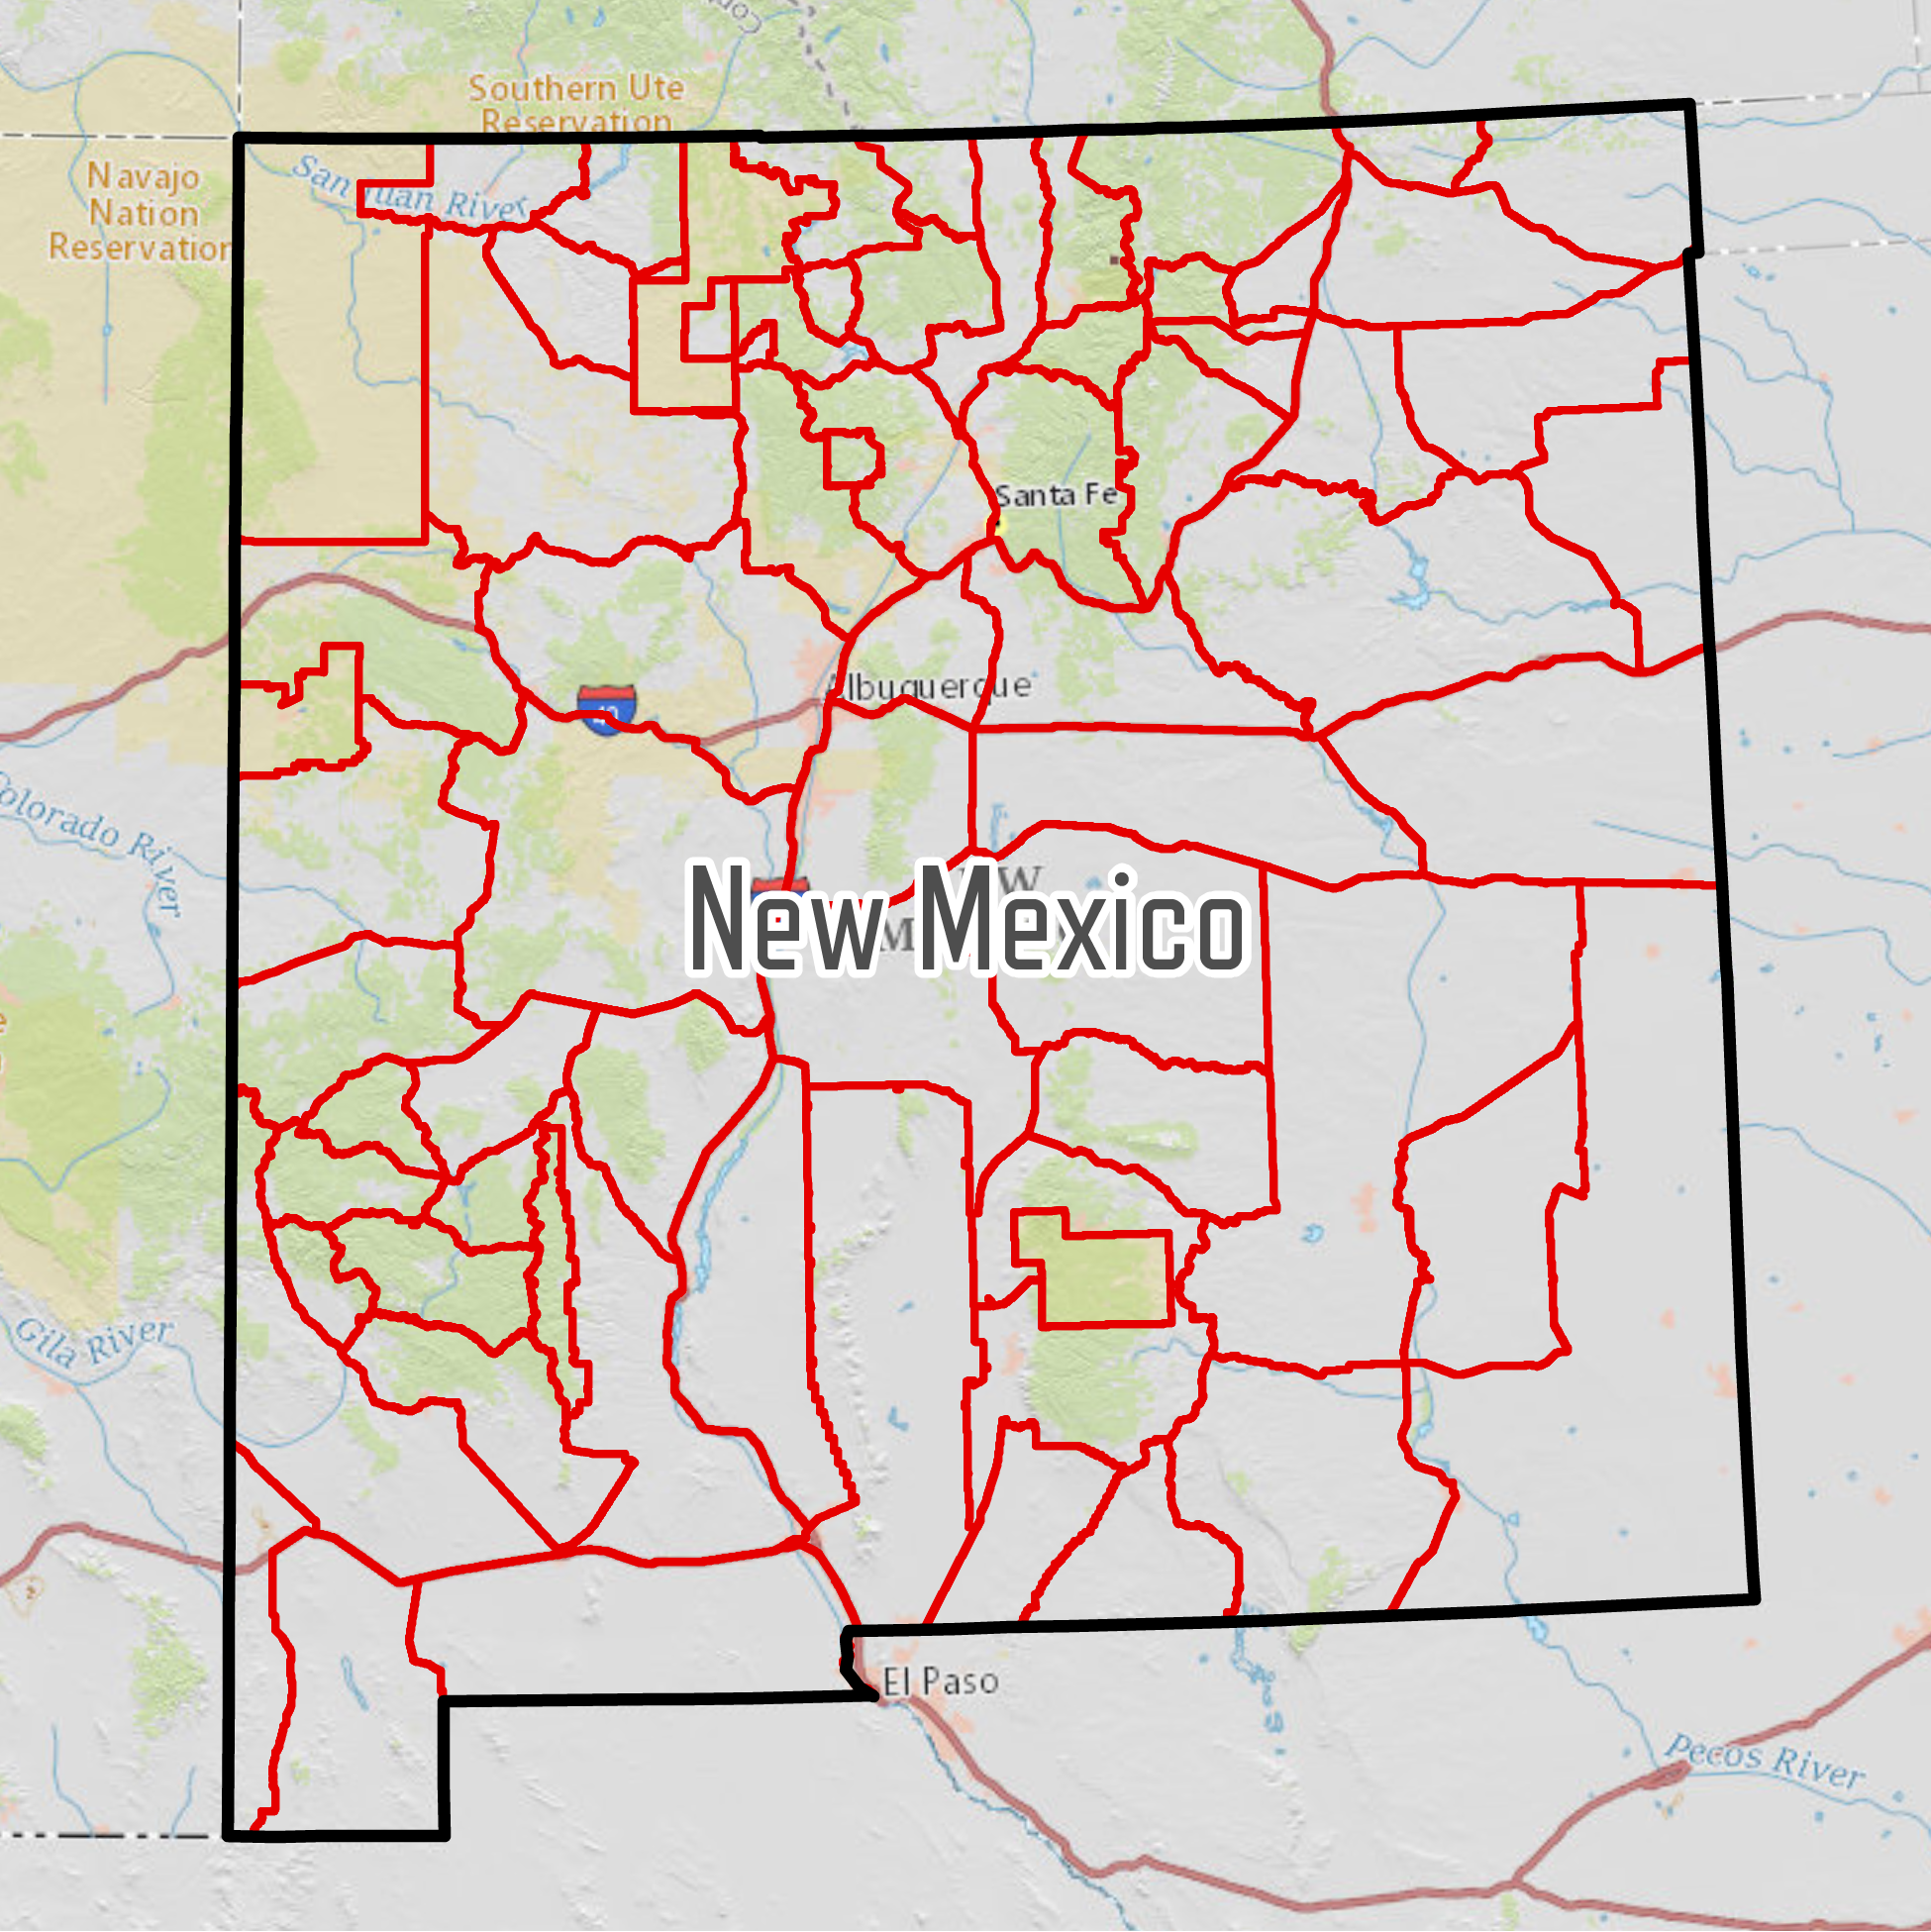 New Mexico Hunting Maps – Game Planner Maps | Hunting Maps, Hunting ...